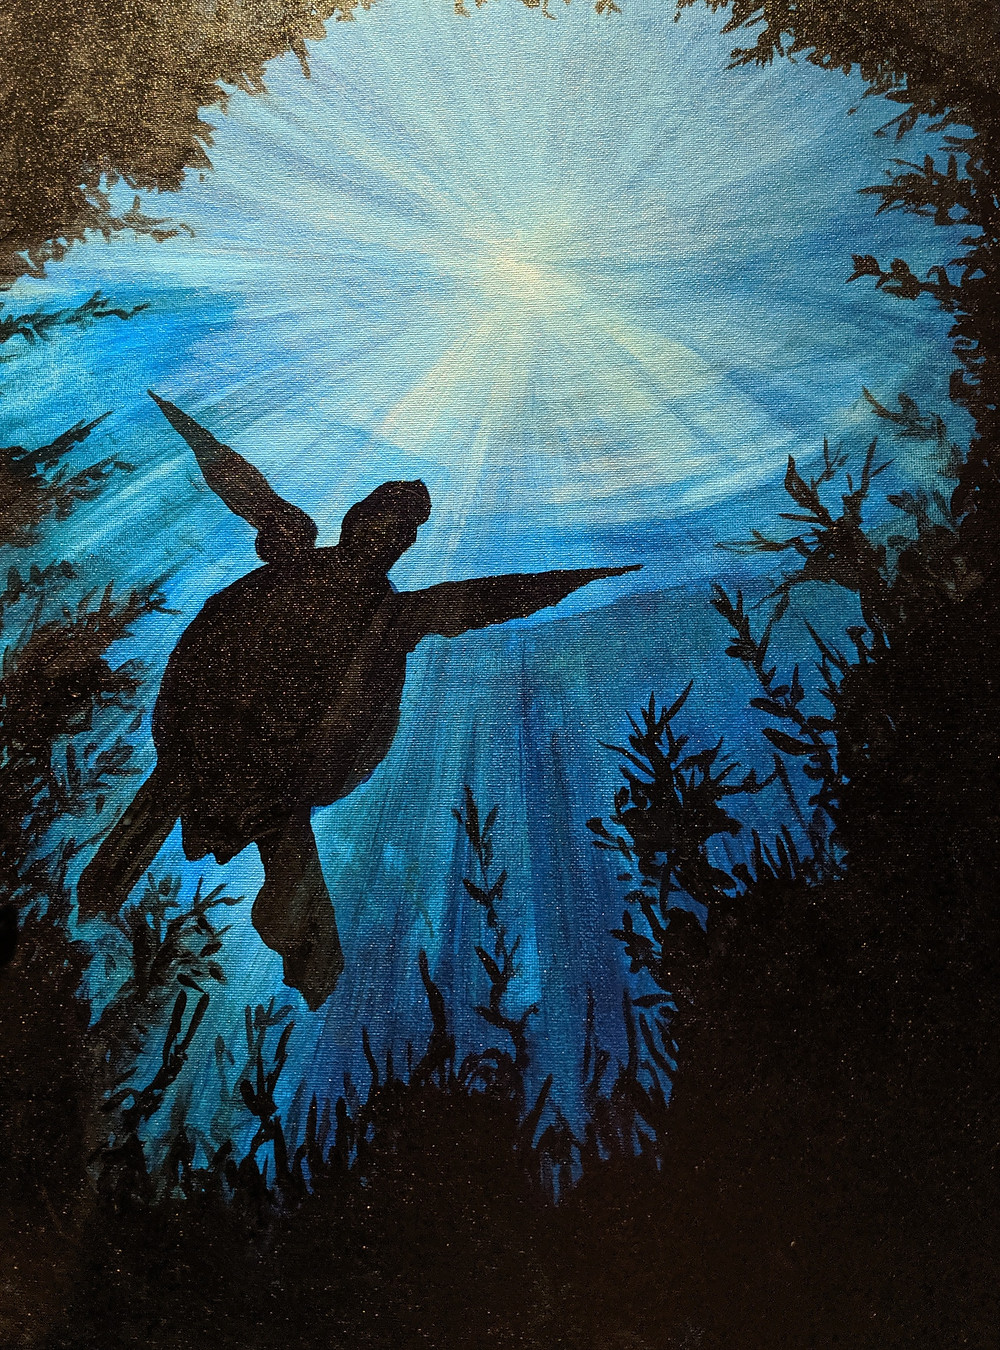 Paint Night, Turtle, Underwater painting, Acrylic, Daily painting practice